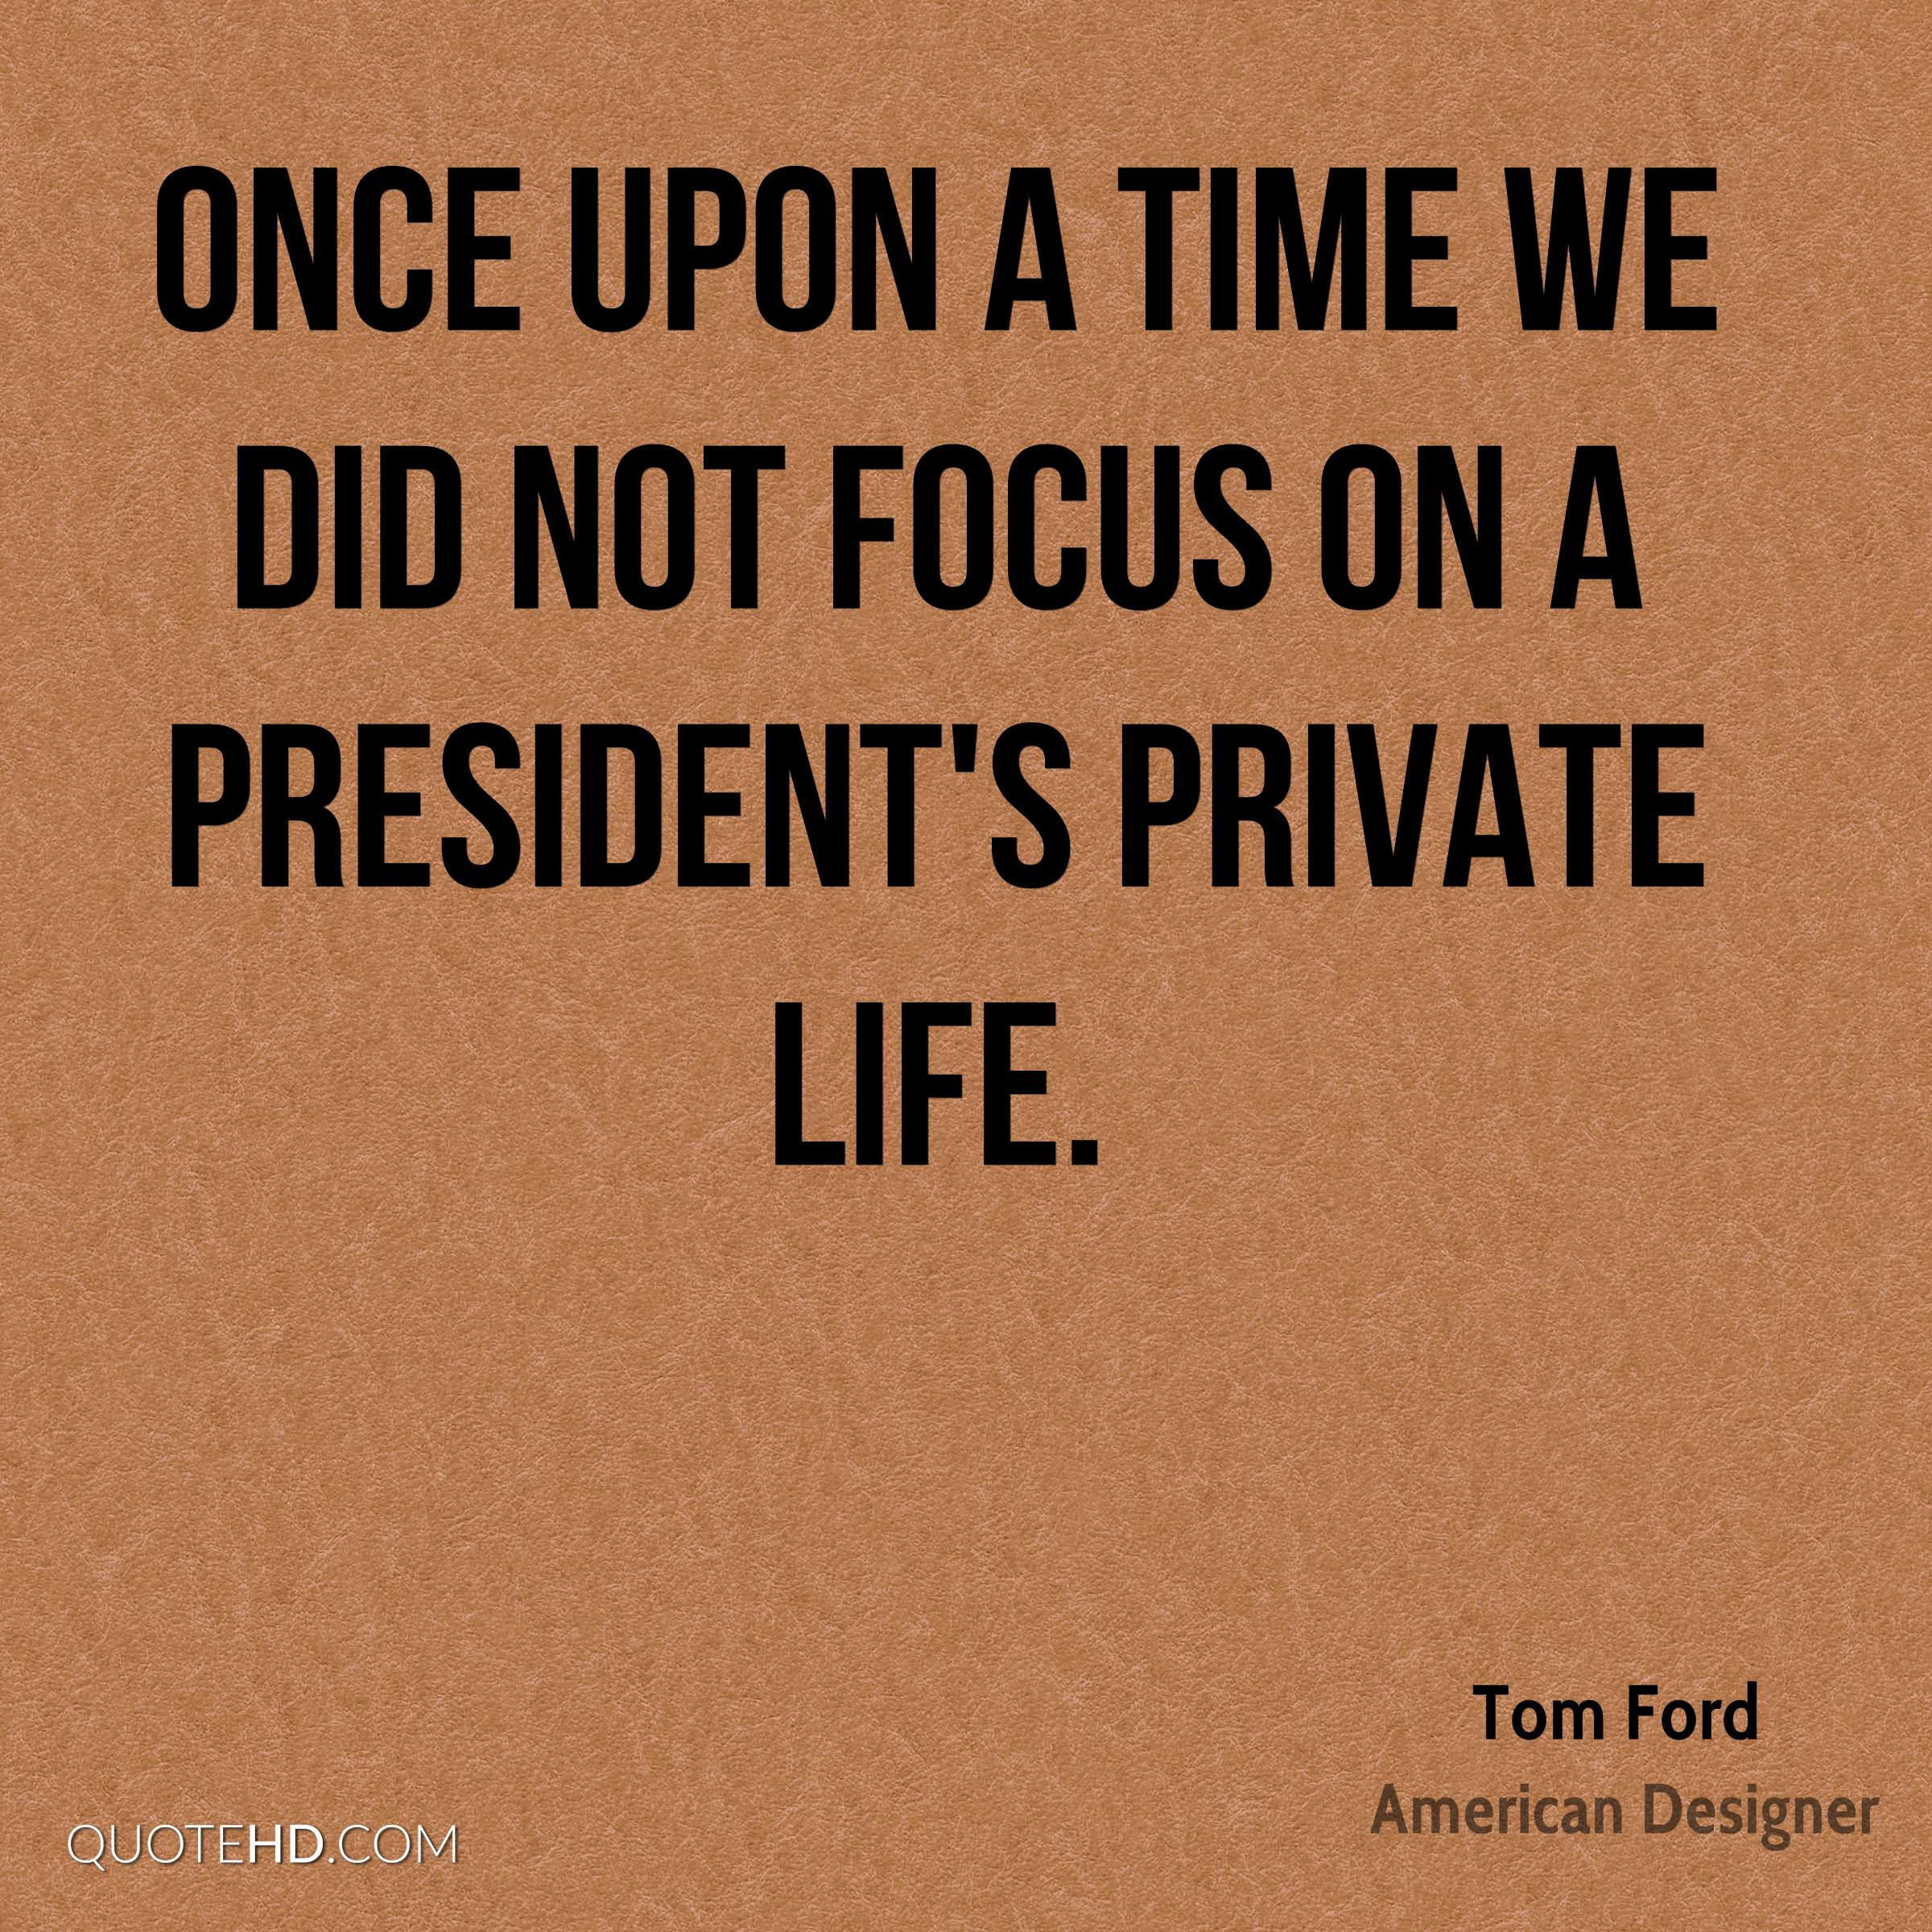 Once upon a time we did not focus on a president's private life.